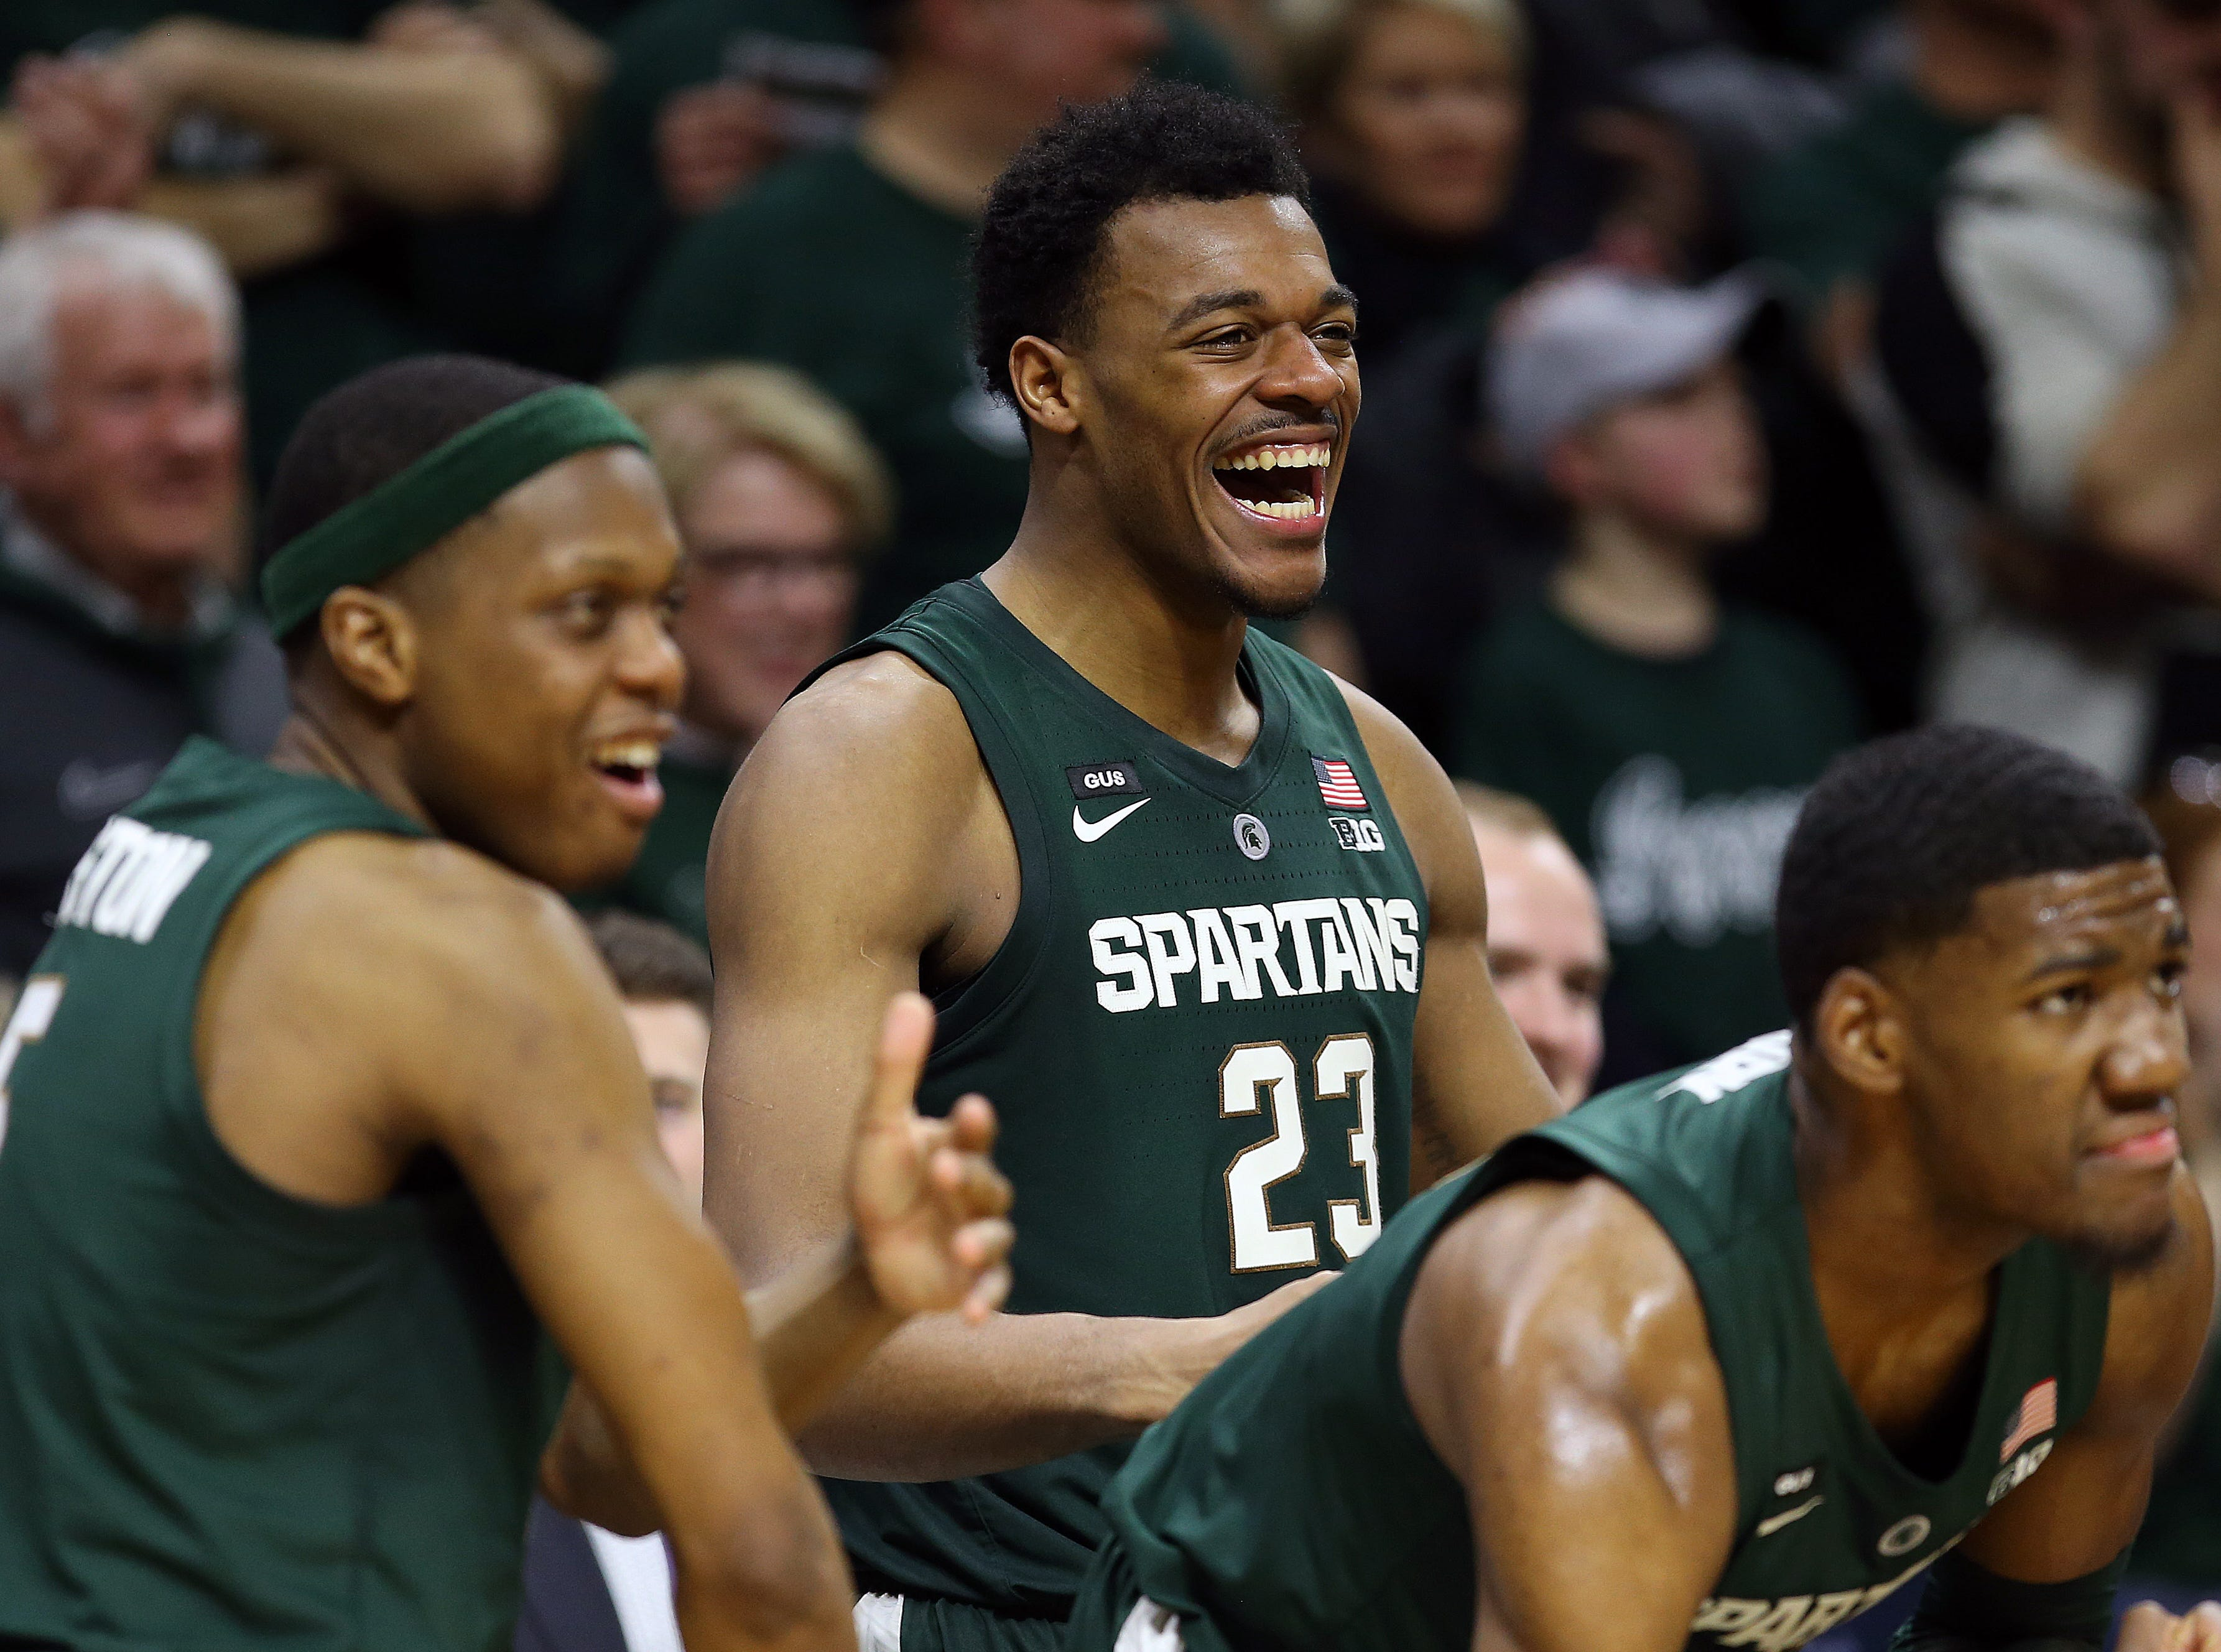 Mar 5, 2019; East Lansing, MI, USA; Michigan State Spartans forward Xavier Tillman (23) reacts from the bench during the second half against the Nebraska Cornhuskers at the Breslin Center. Mandatory Credit: Mike Carter-USA TODAY Sports